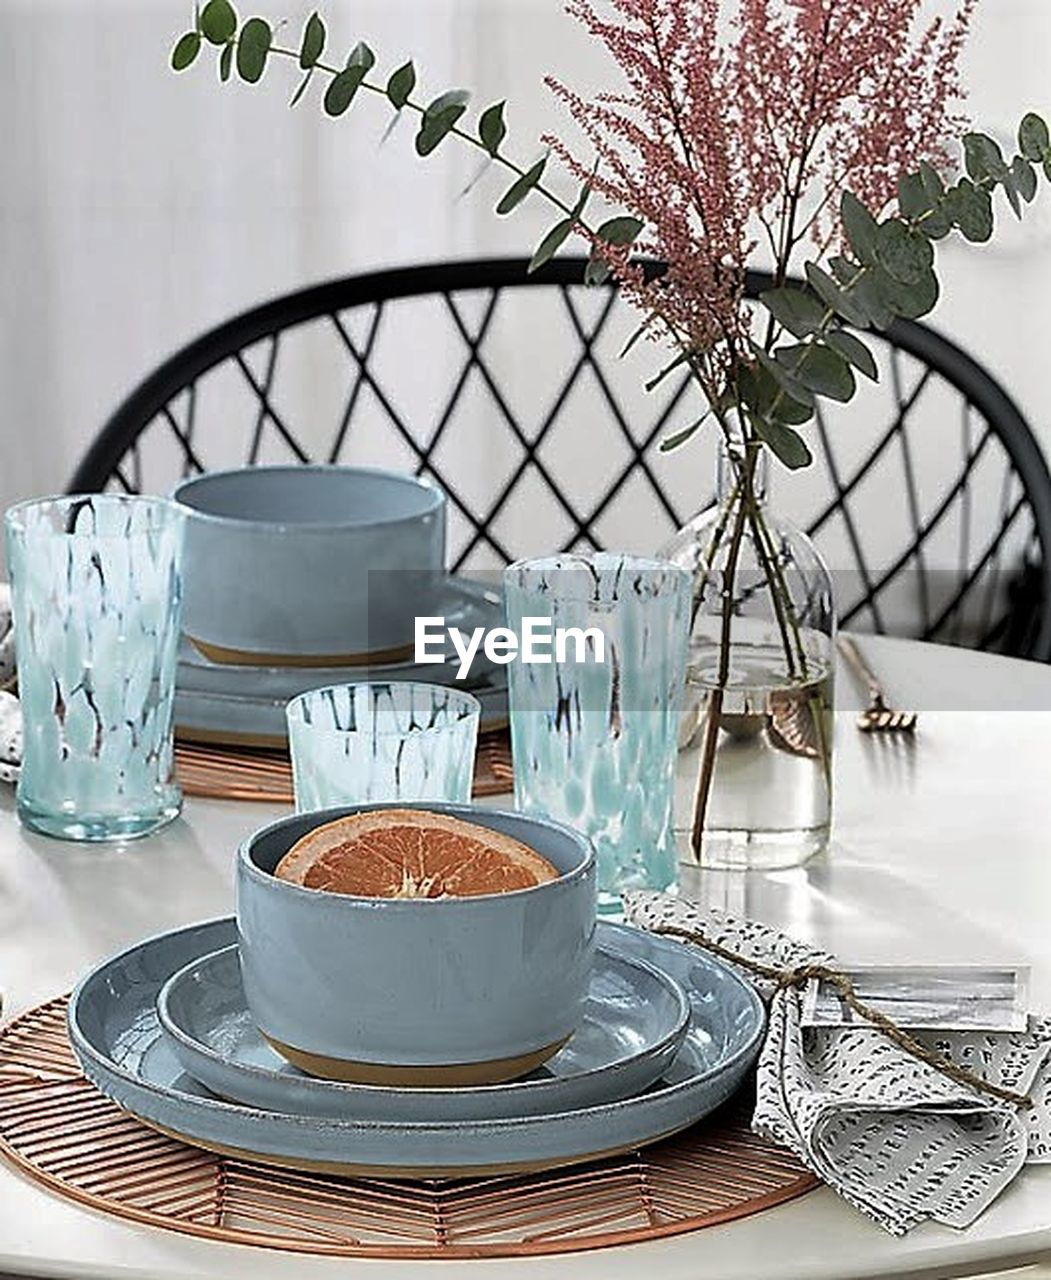 table, vase, flower, place setting, plate, dining table, no people, food and drink, tablecloth, dessert, napkin, tree, indoors, food, day, water, freshness, close-up